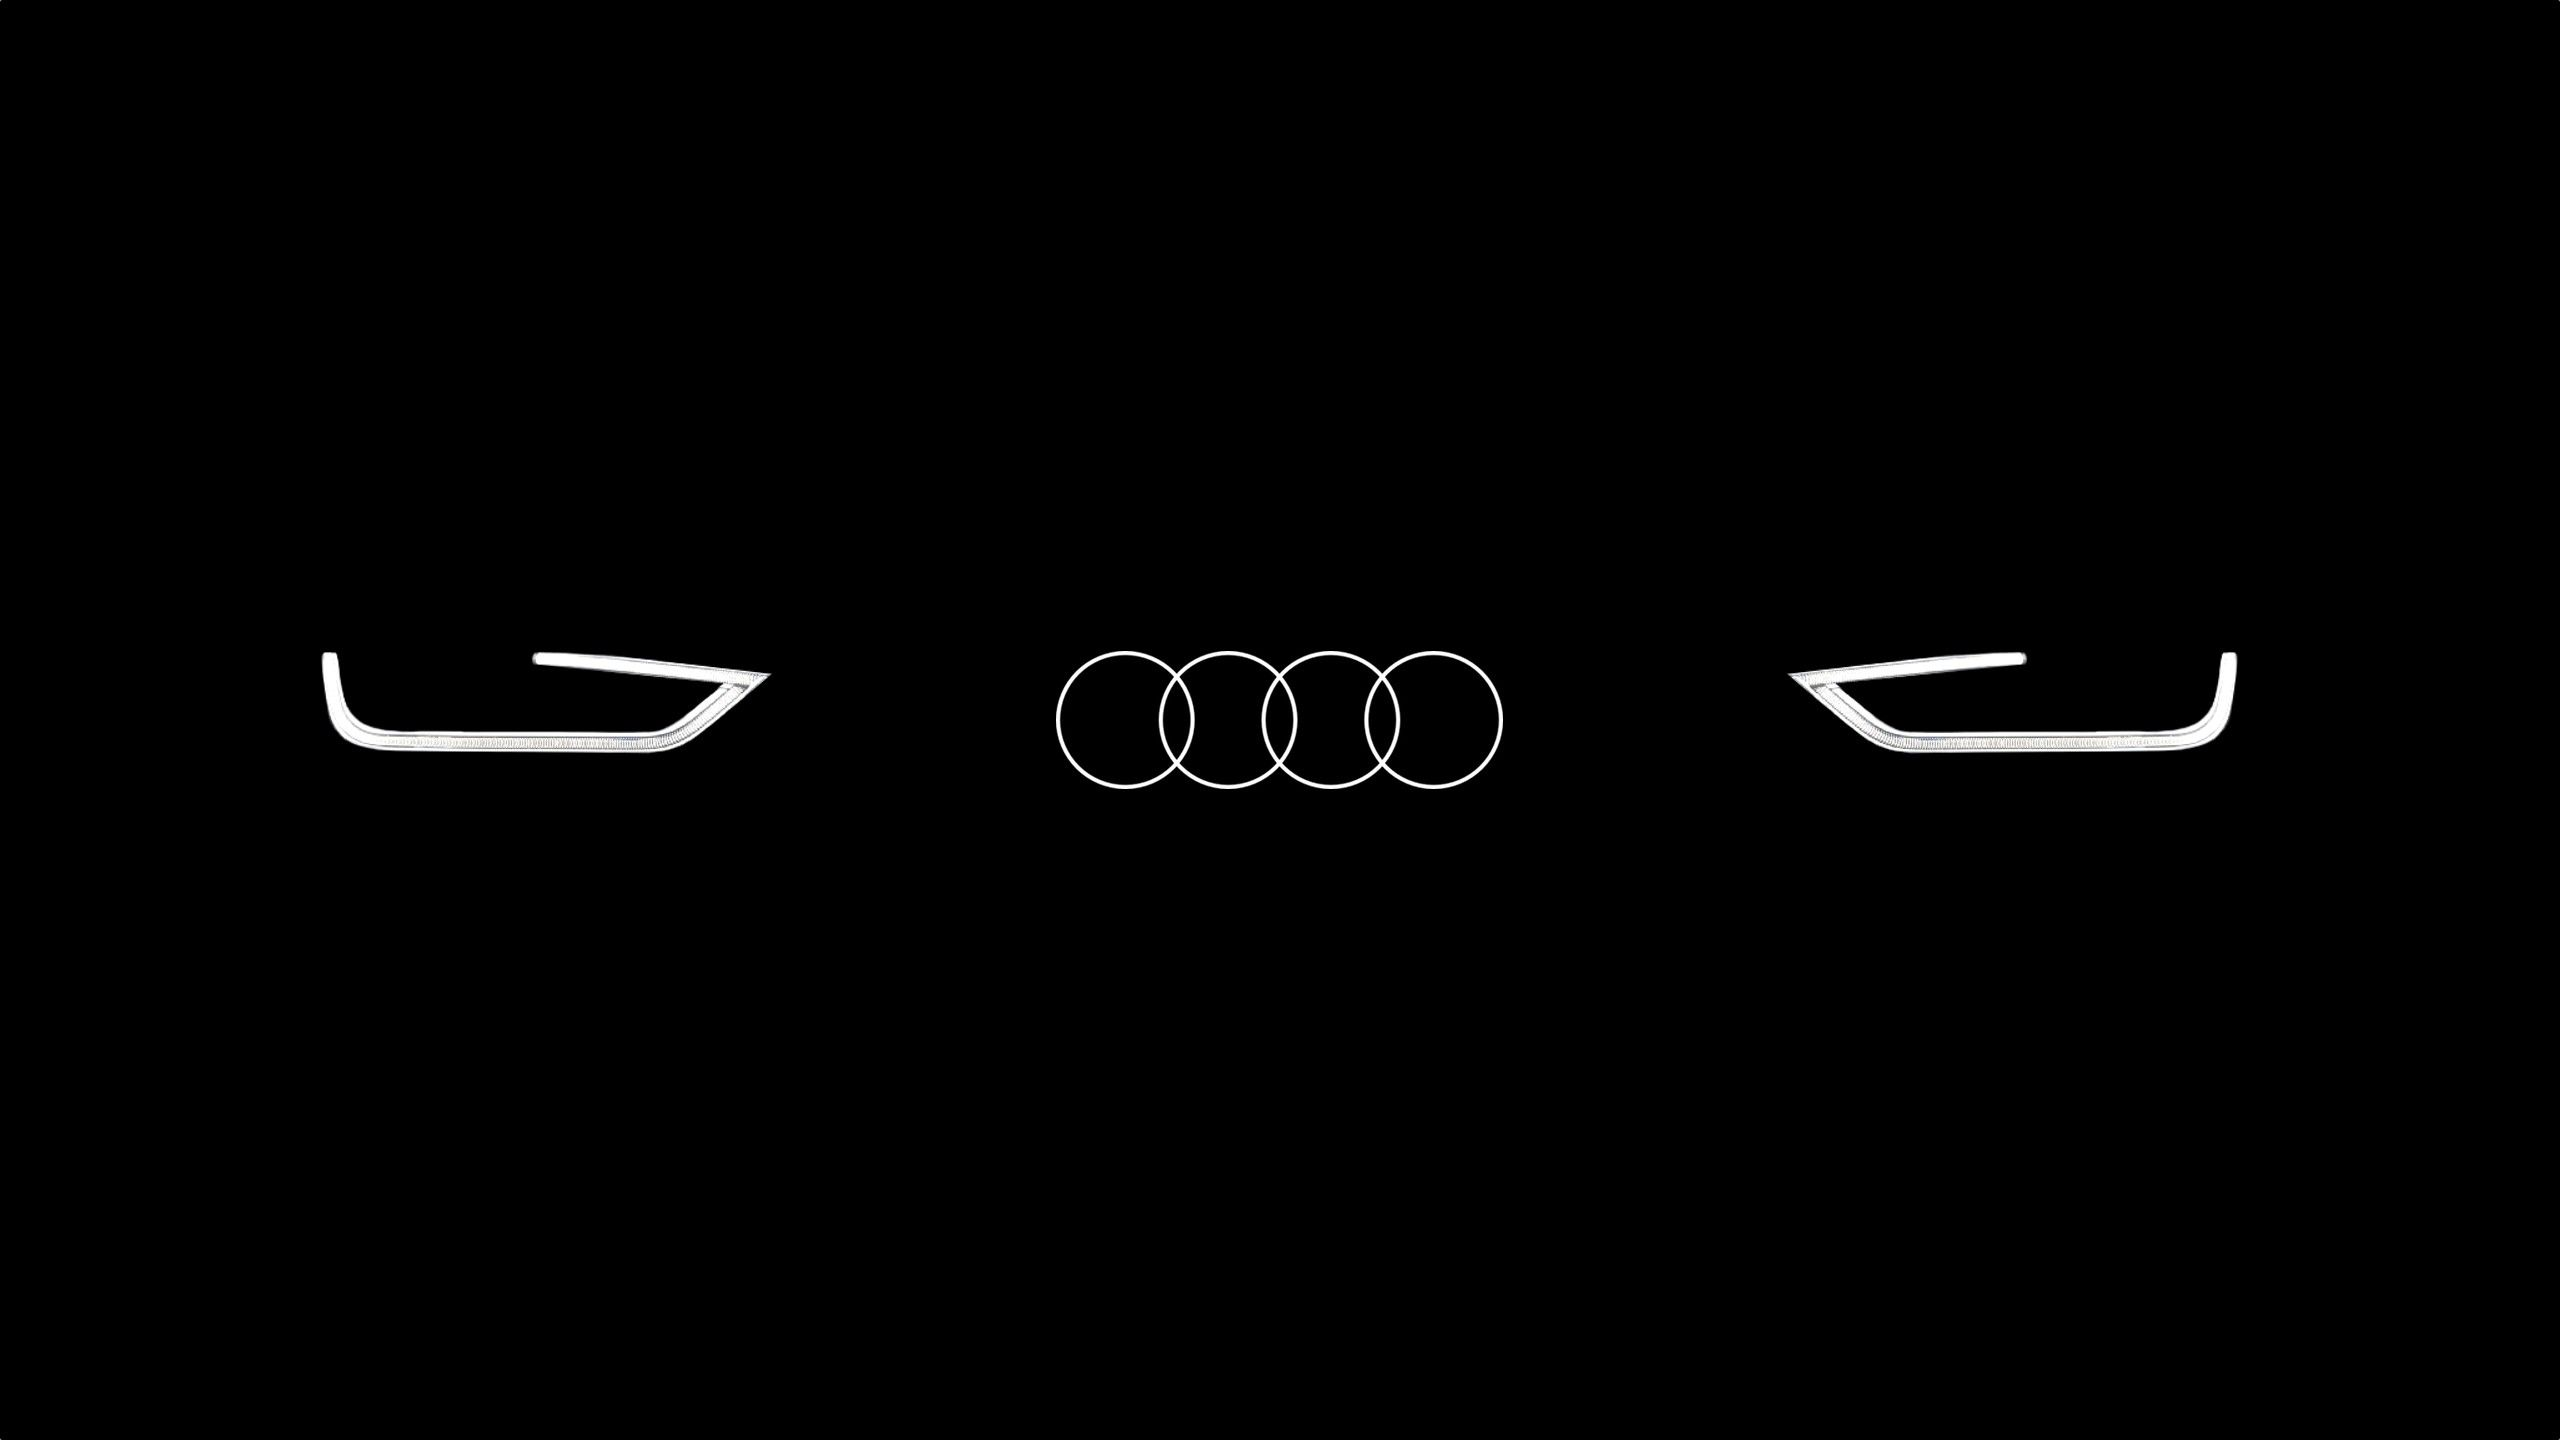 Elegant Audi Logo Wallpapers Phone Logo Wallpaper Hd Car Logos Automotive Logo